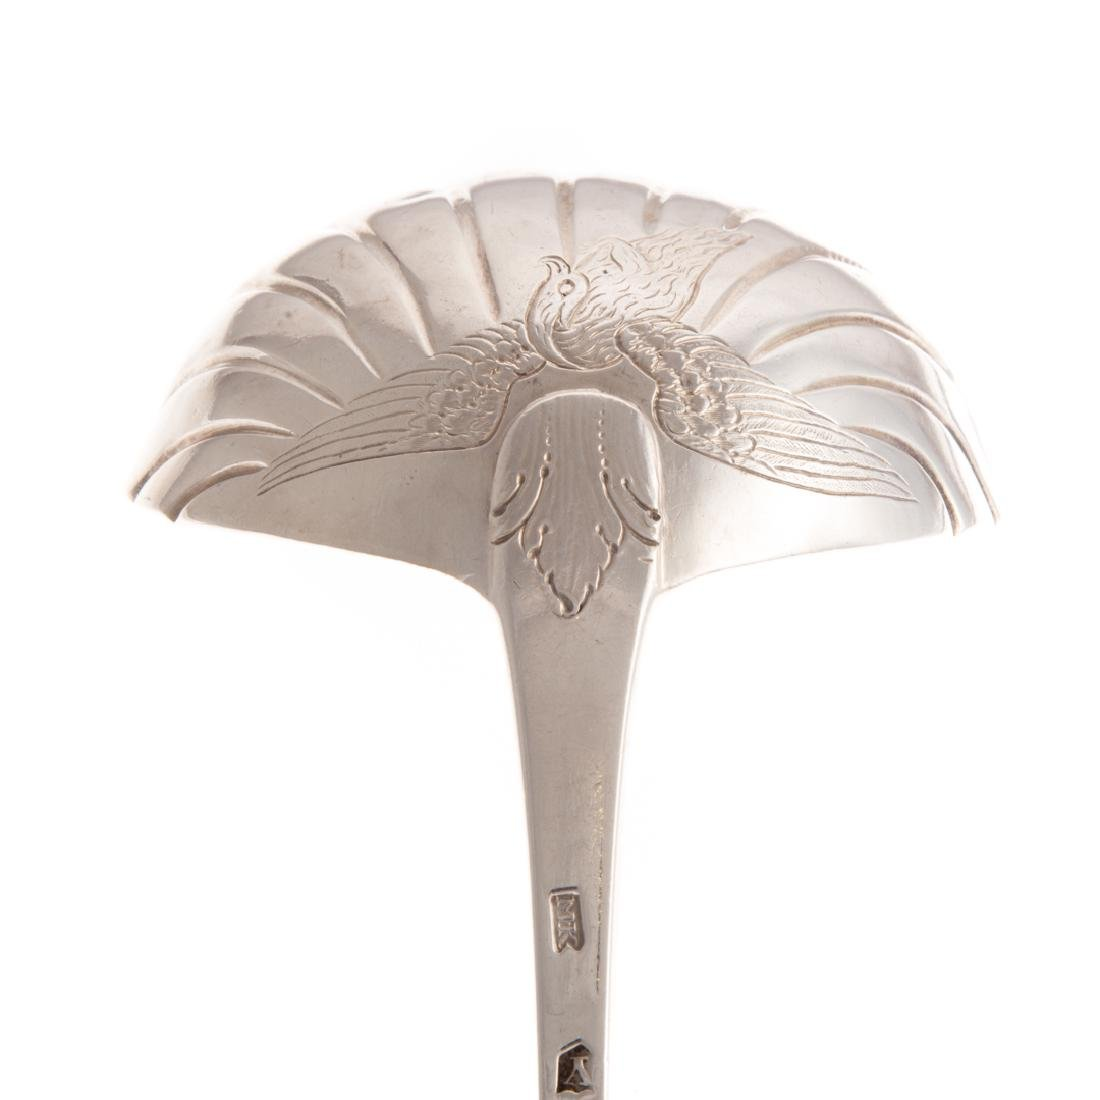 Continental silver soup ladle and fish slice - 5